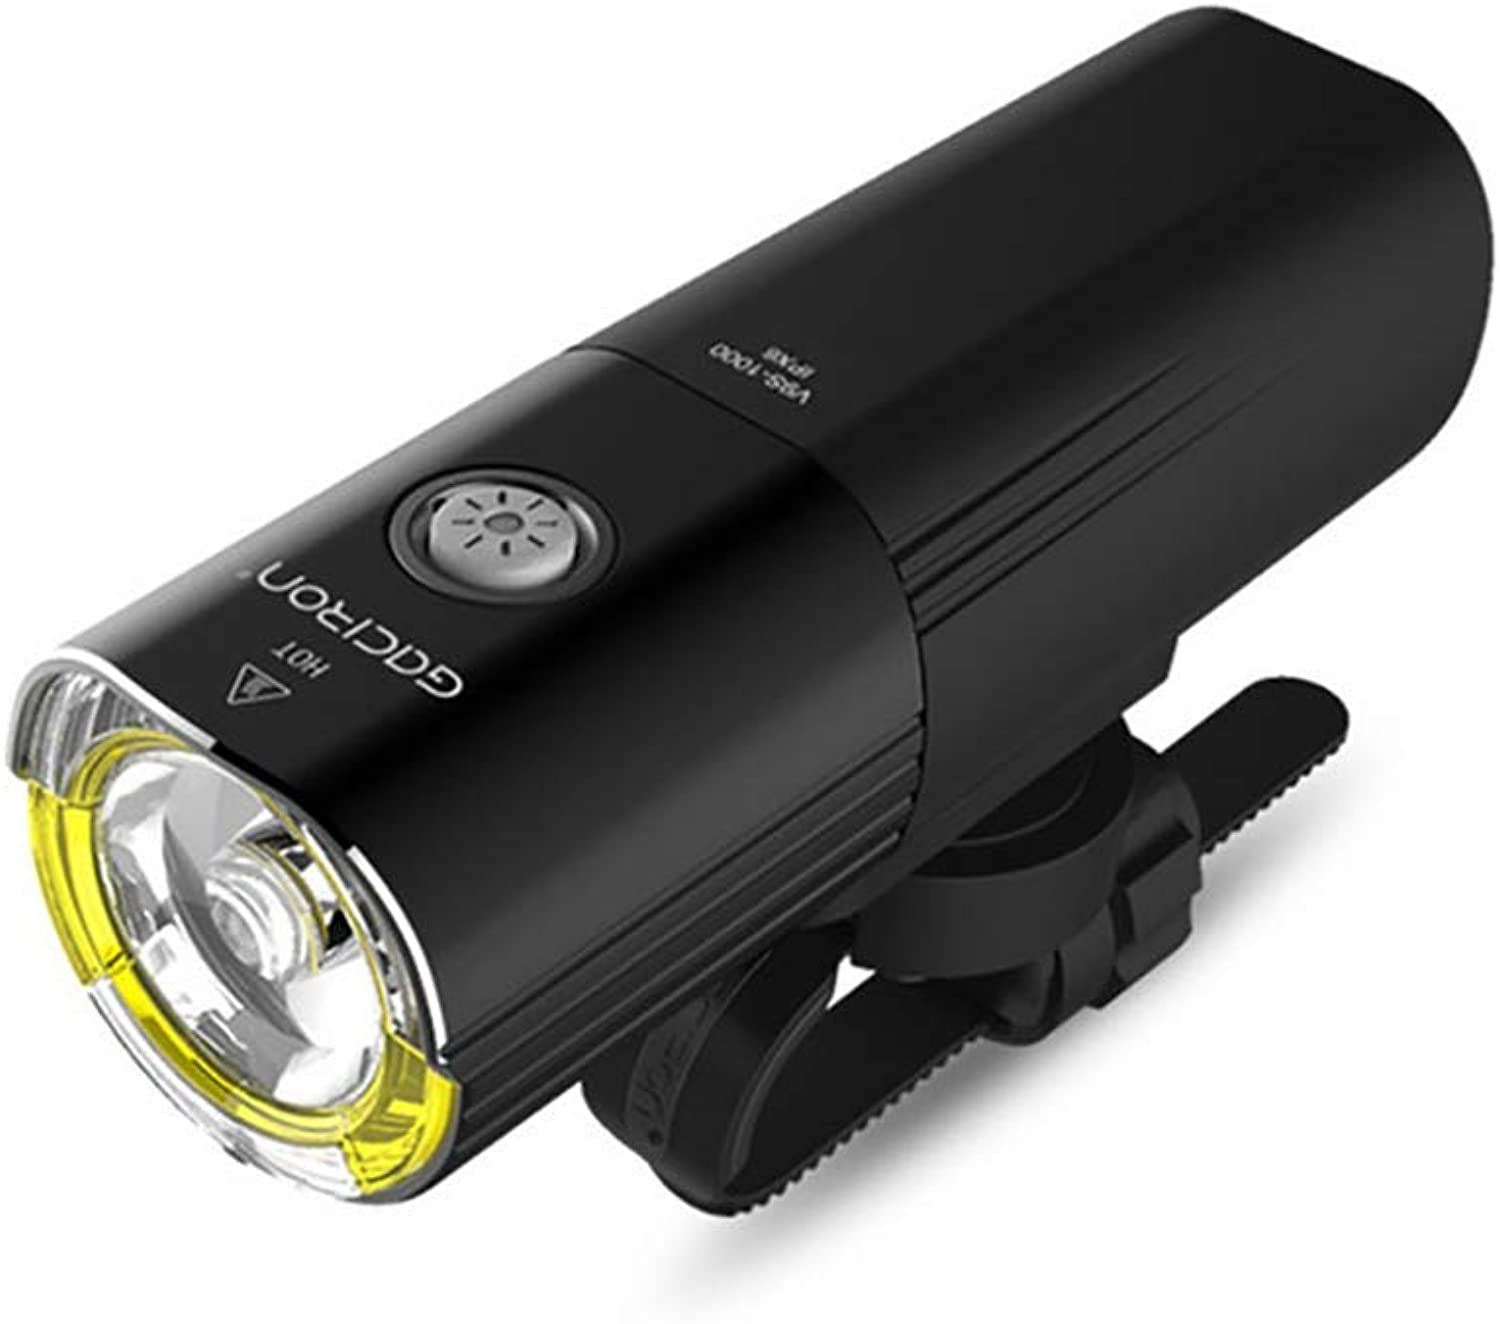 MYD888 Usb Rechargeable Bicycle Glare Flashlight With 1000 Lumens Has Suitable For Night Lighting Warning Running